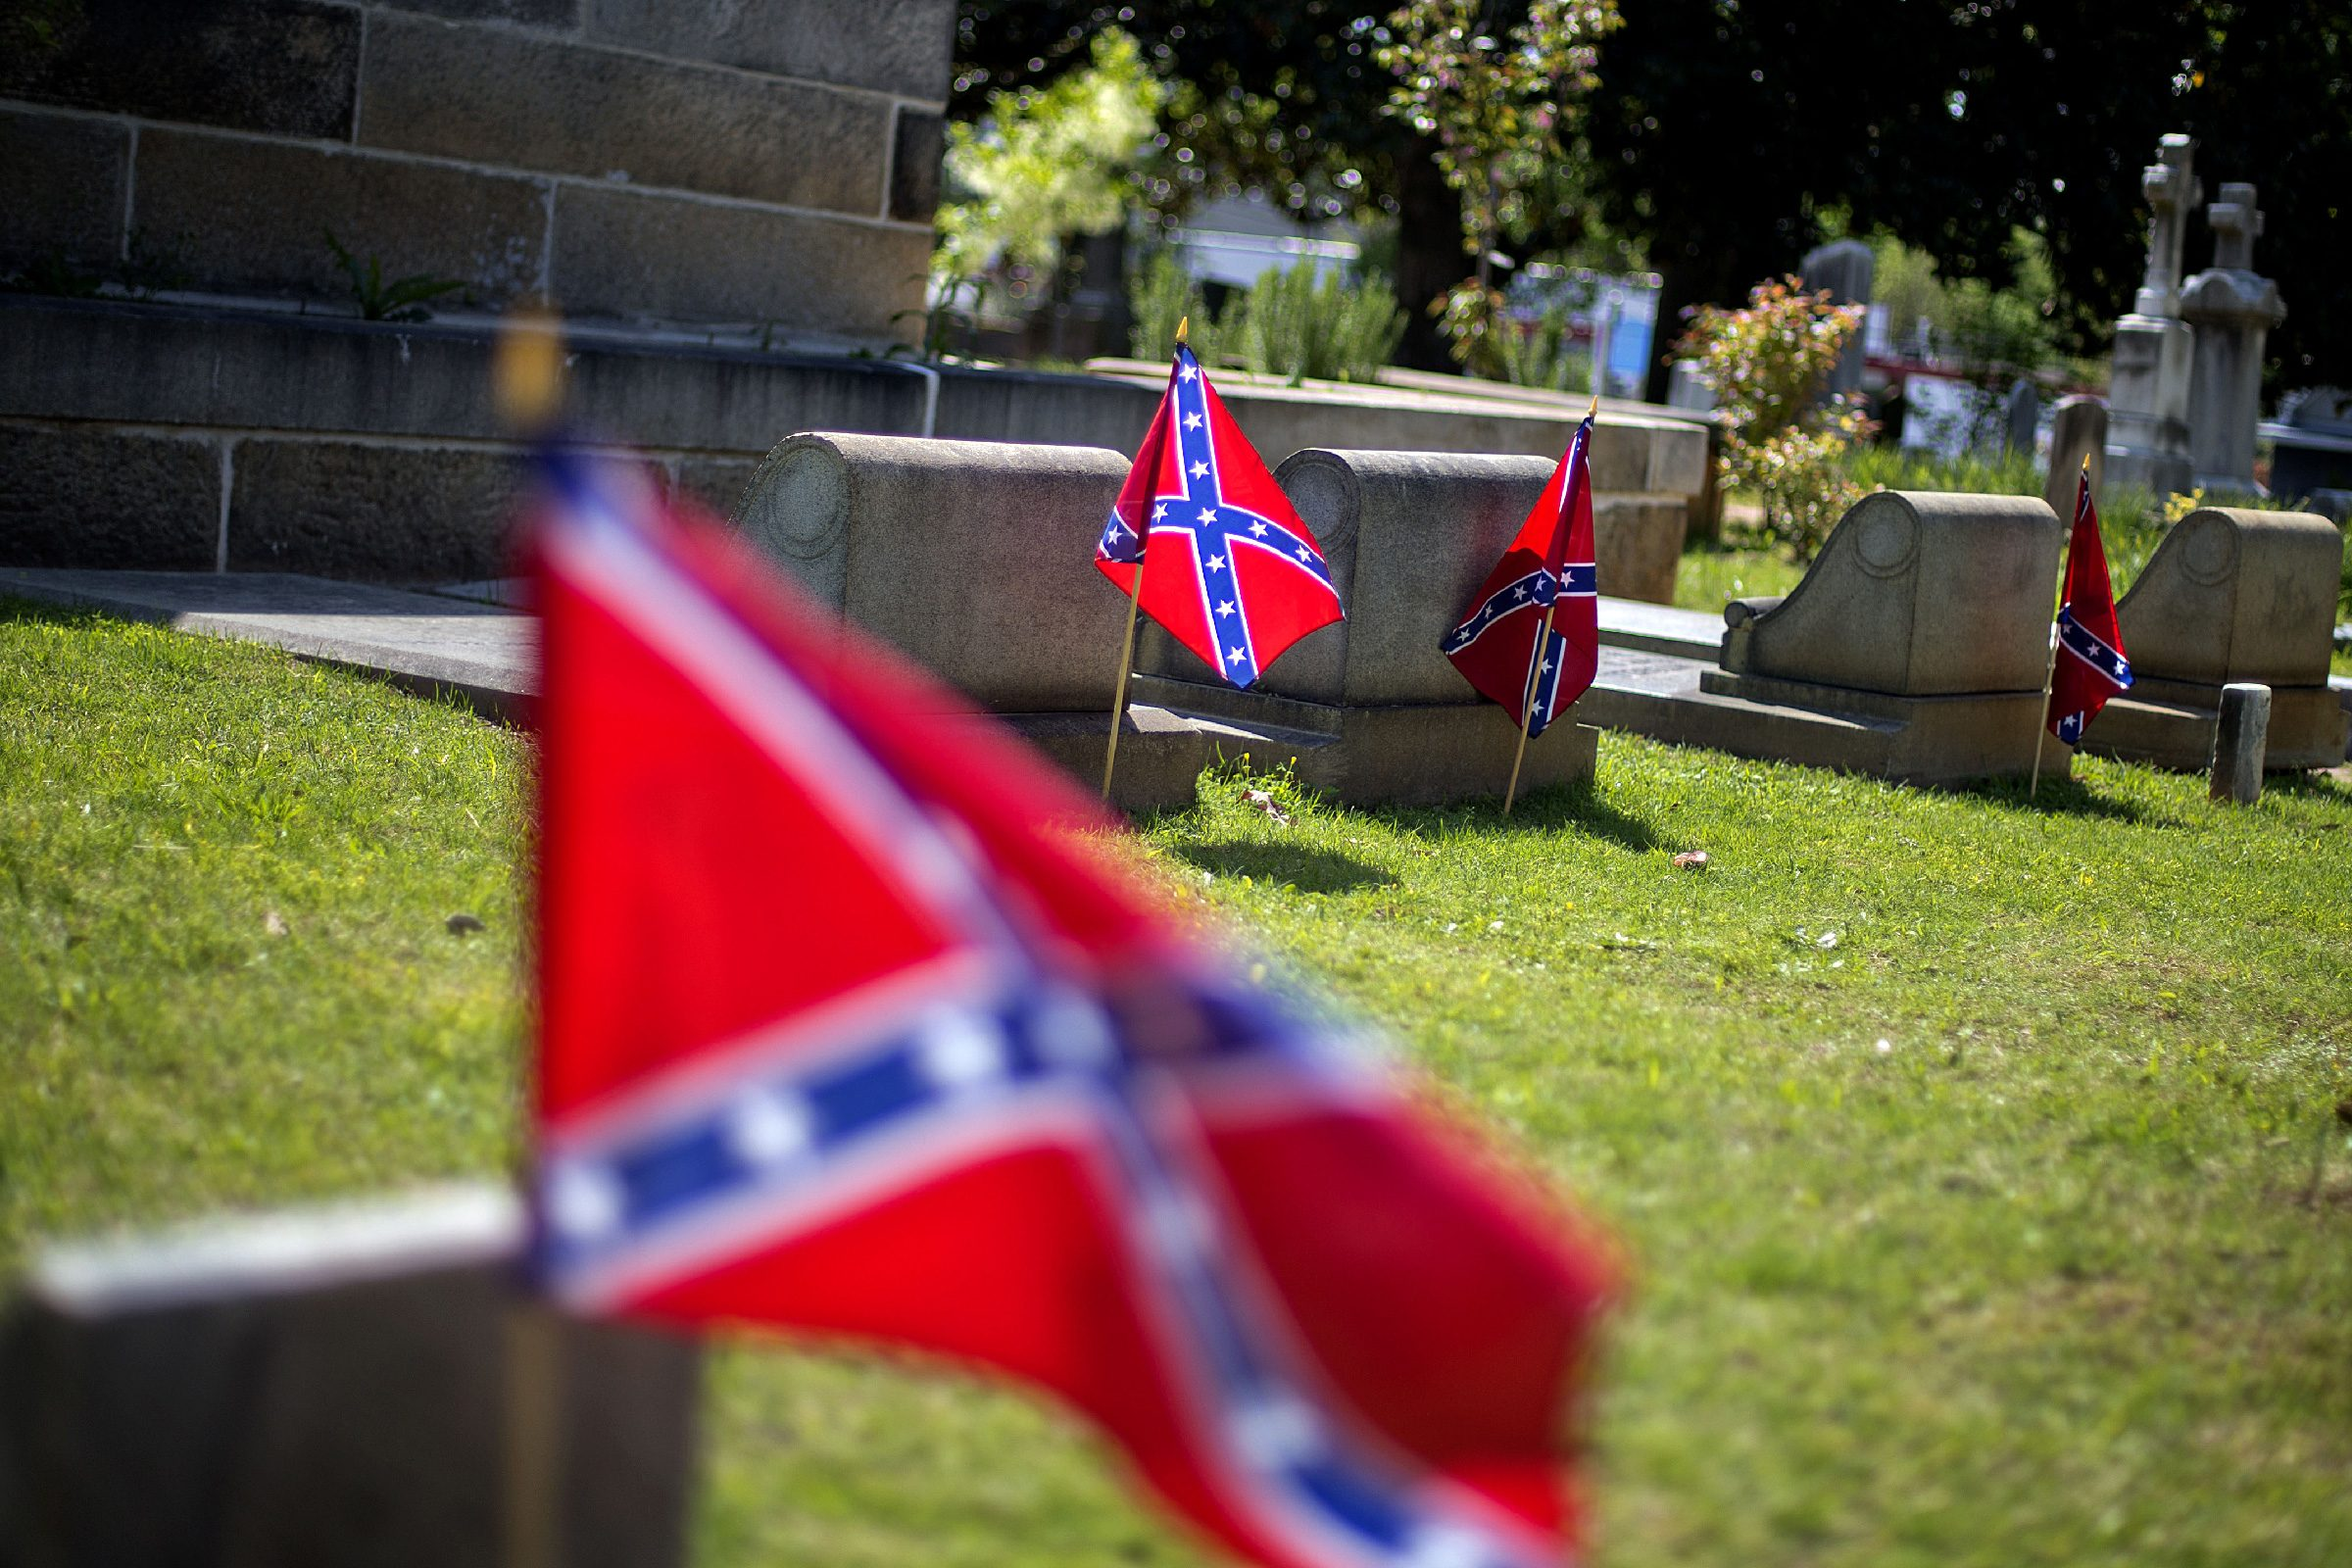 Confederate flags are planted next to the graves of Confederate soldiers in Oakland cemetery, in Atlanta. Georgia observes Confederate Memorial Day Monday marking the anniversary of the end of the Civil War. While April 26th is officially recognized as Confederate Memorial Day, state offices are closed Monday in observance of the holiday